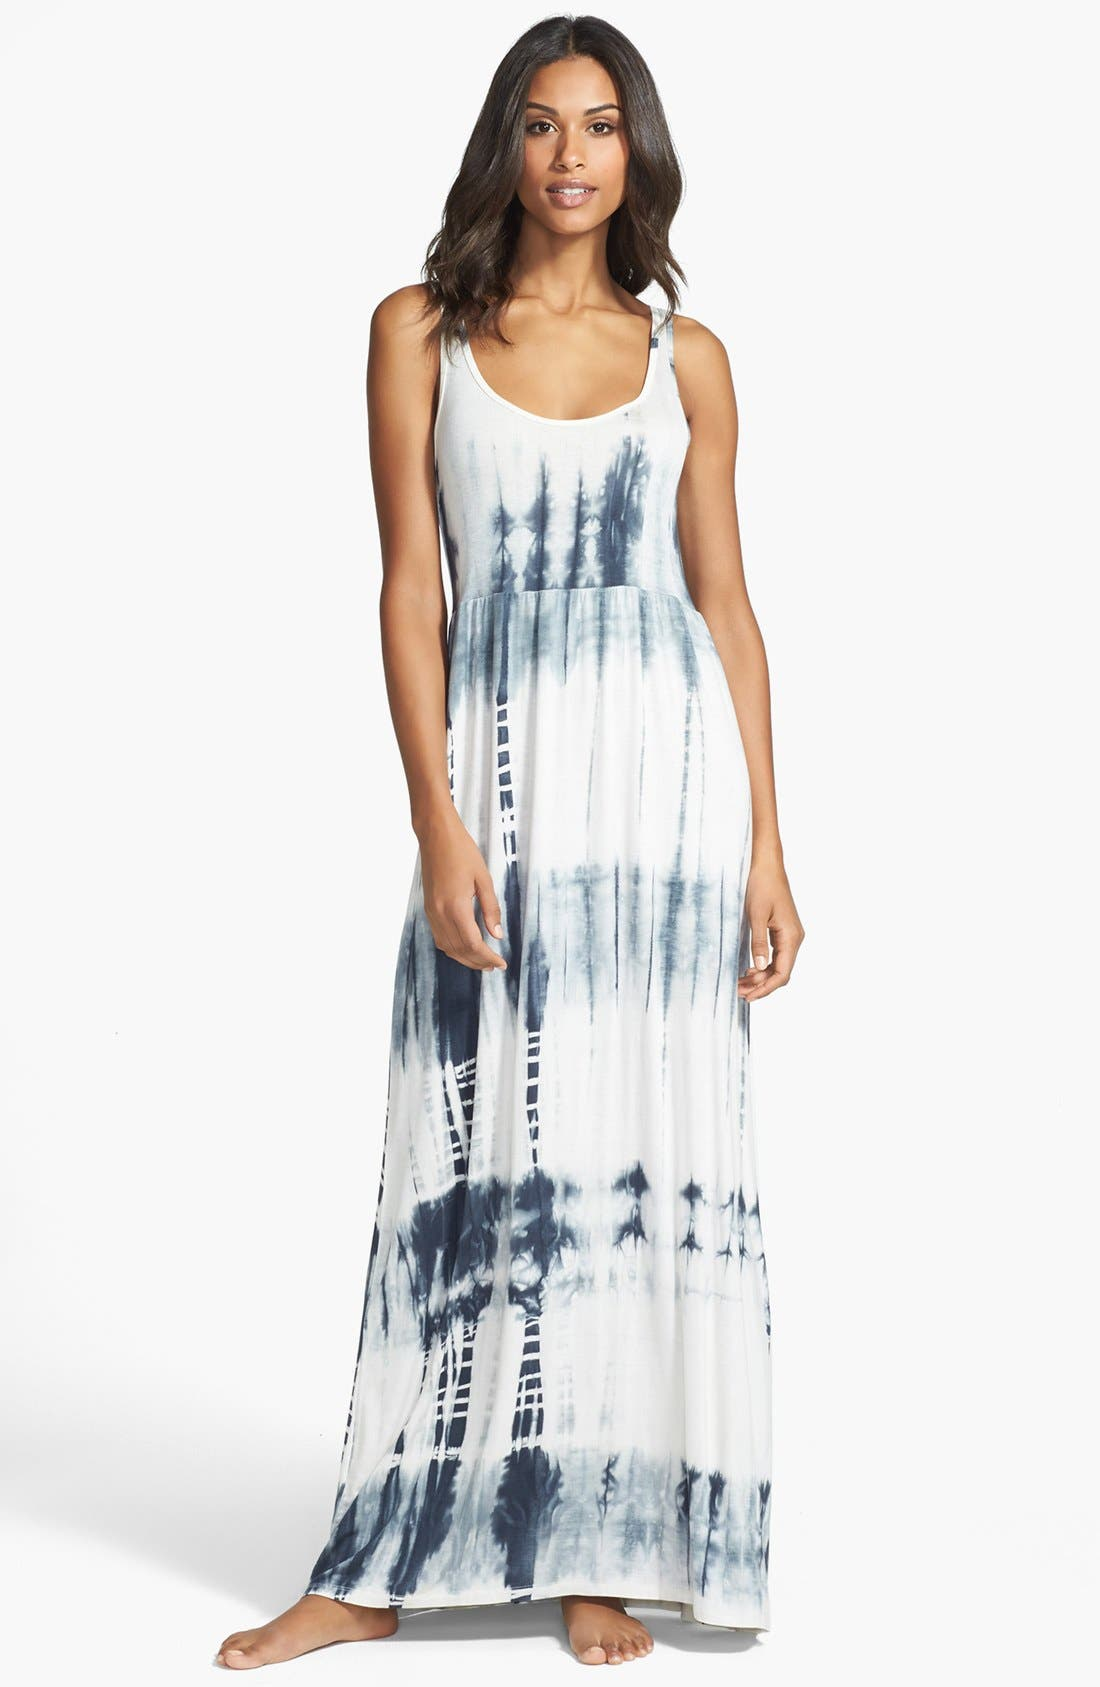 Main Image - Daniel Buchler Tie Dye Maxi Dress